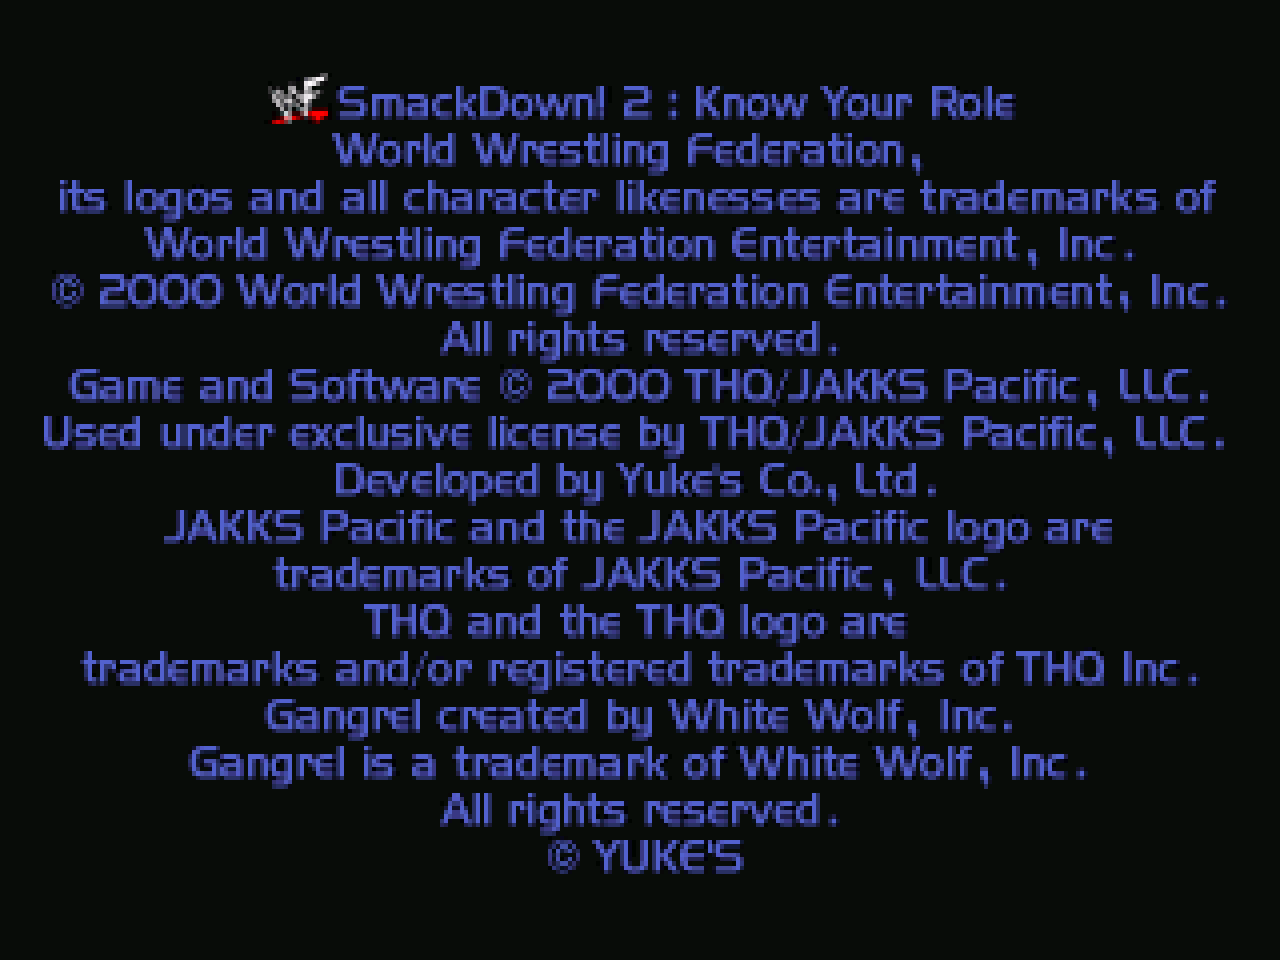 https://s3.eu-west-3.amazonaws.com/games.anthony-dessalles.com/WWF SmackDown 2 Know Your Role PS1 2020 - Screenshots/WWF SmackDown 2 Know Your Role-201127-183648.png